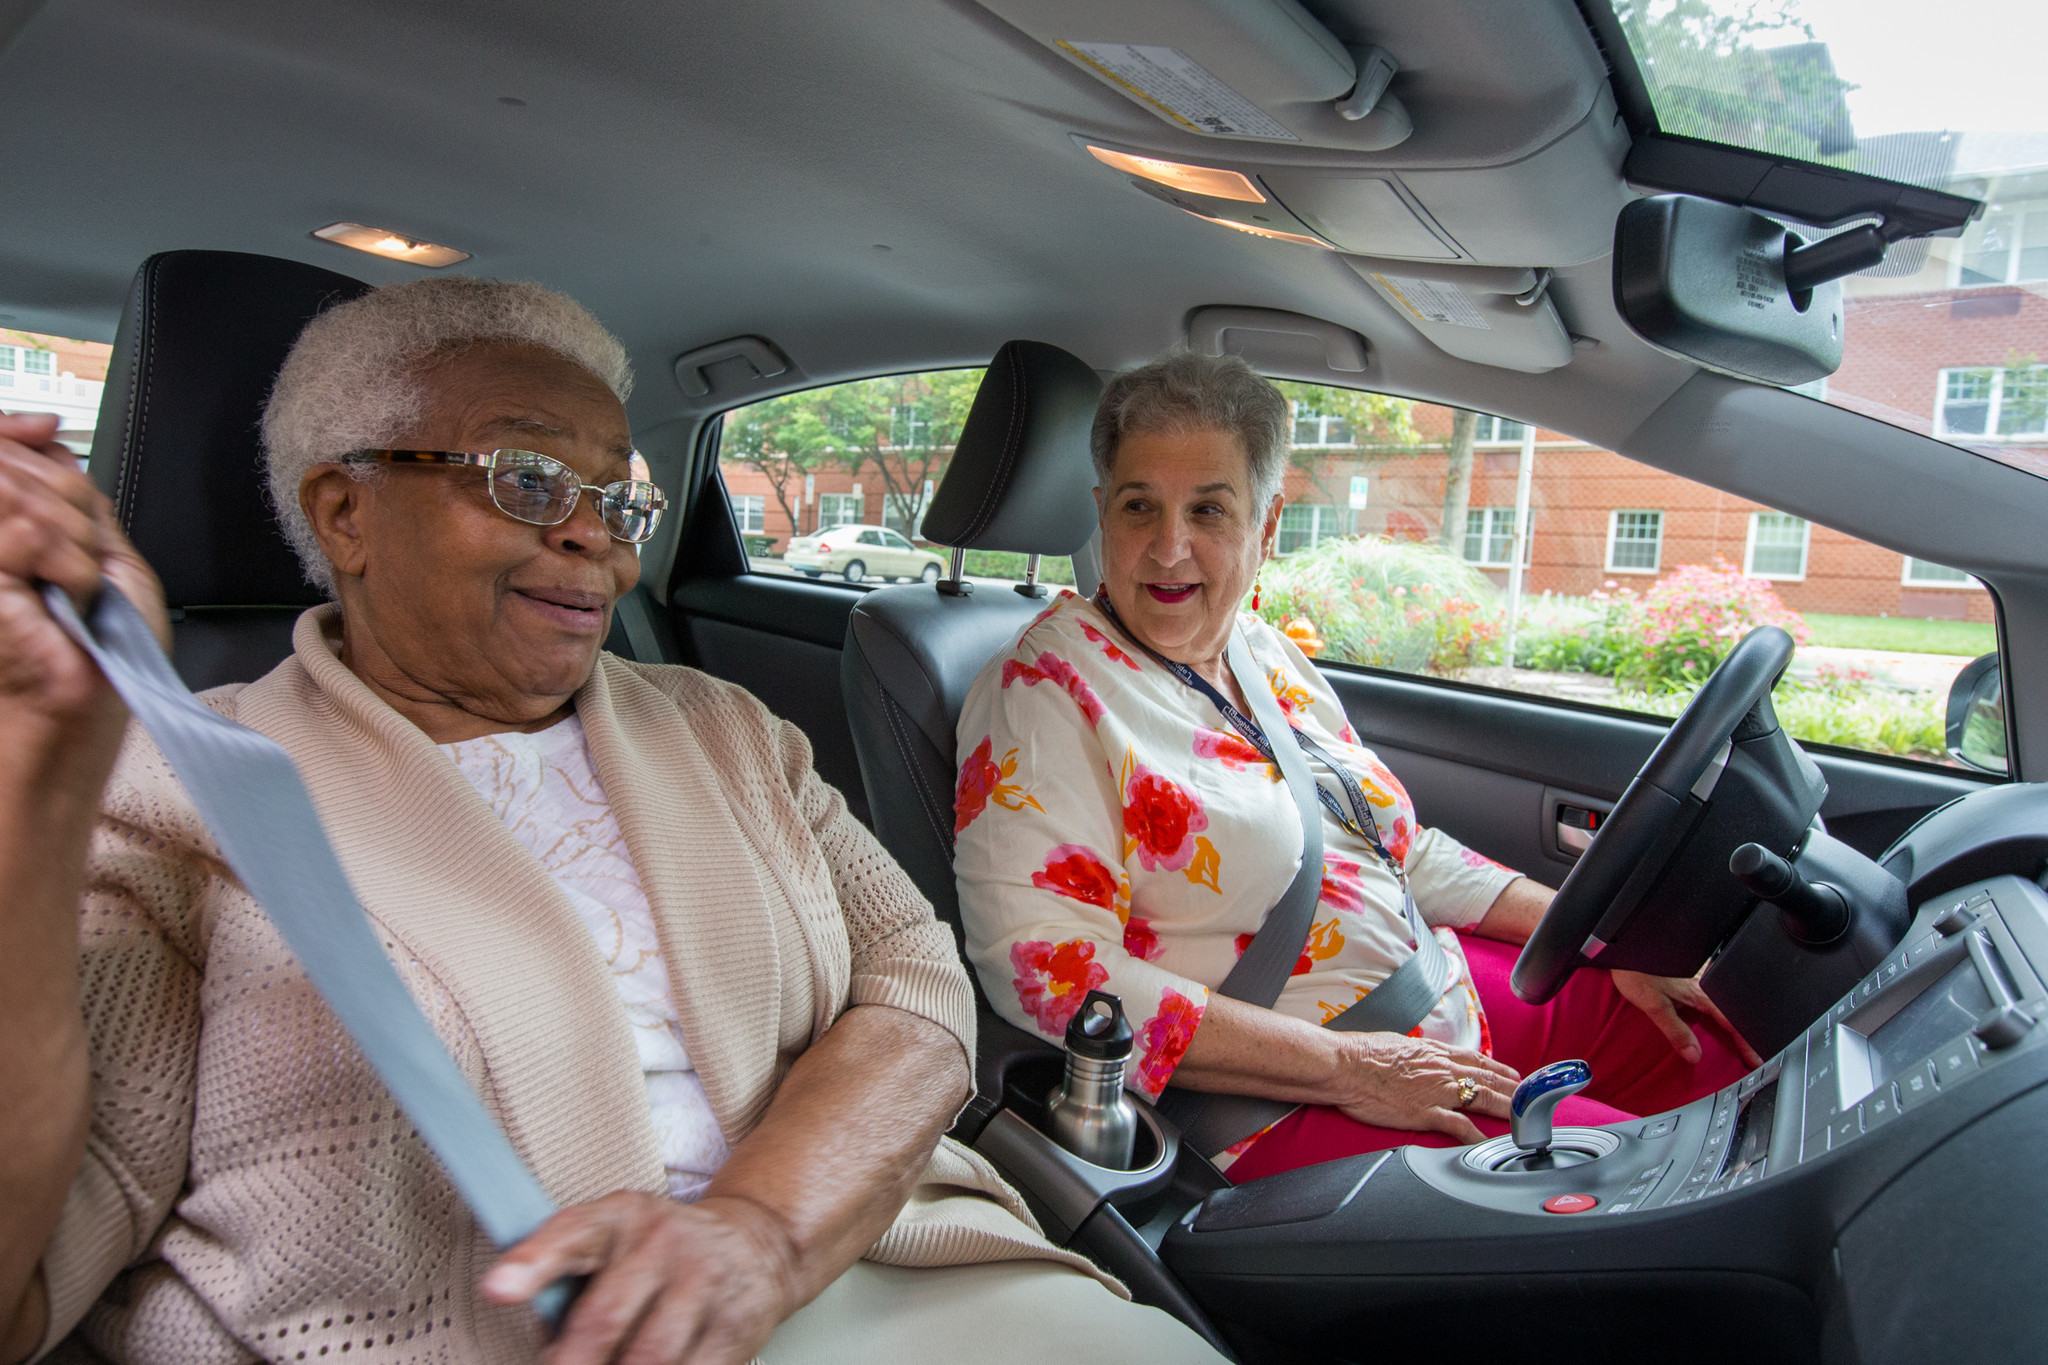 Columbia senior Mildred Jones, left, puts on her seat belt as Neighbor Ride volunteer driver Sue Sternheimer takes her to Sunday service at Columbia Community Church. Jones has used Neighbor Ride since 2005 to attend weekly services. Without family nearby, Jones says she values her talks with...